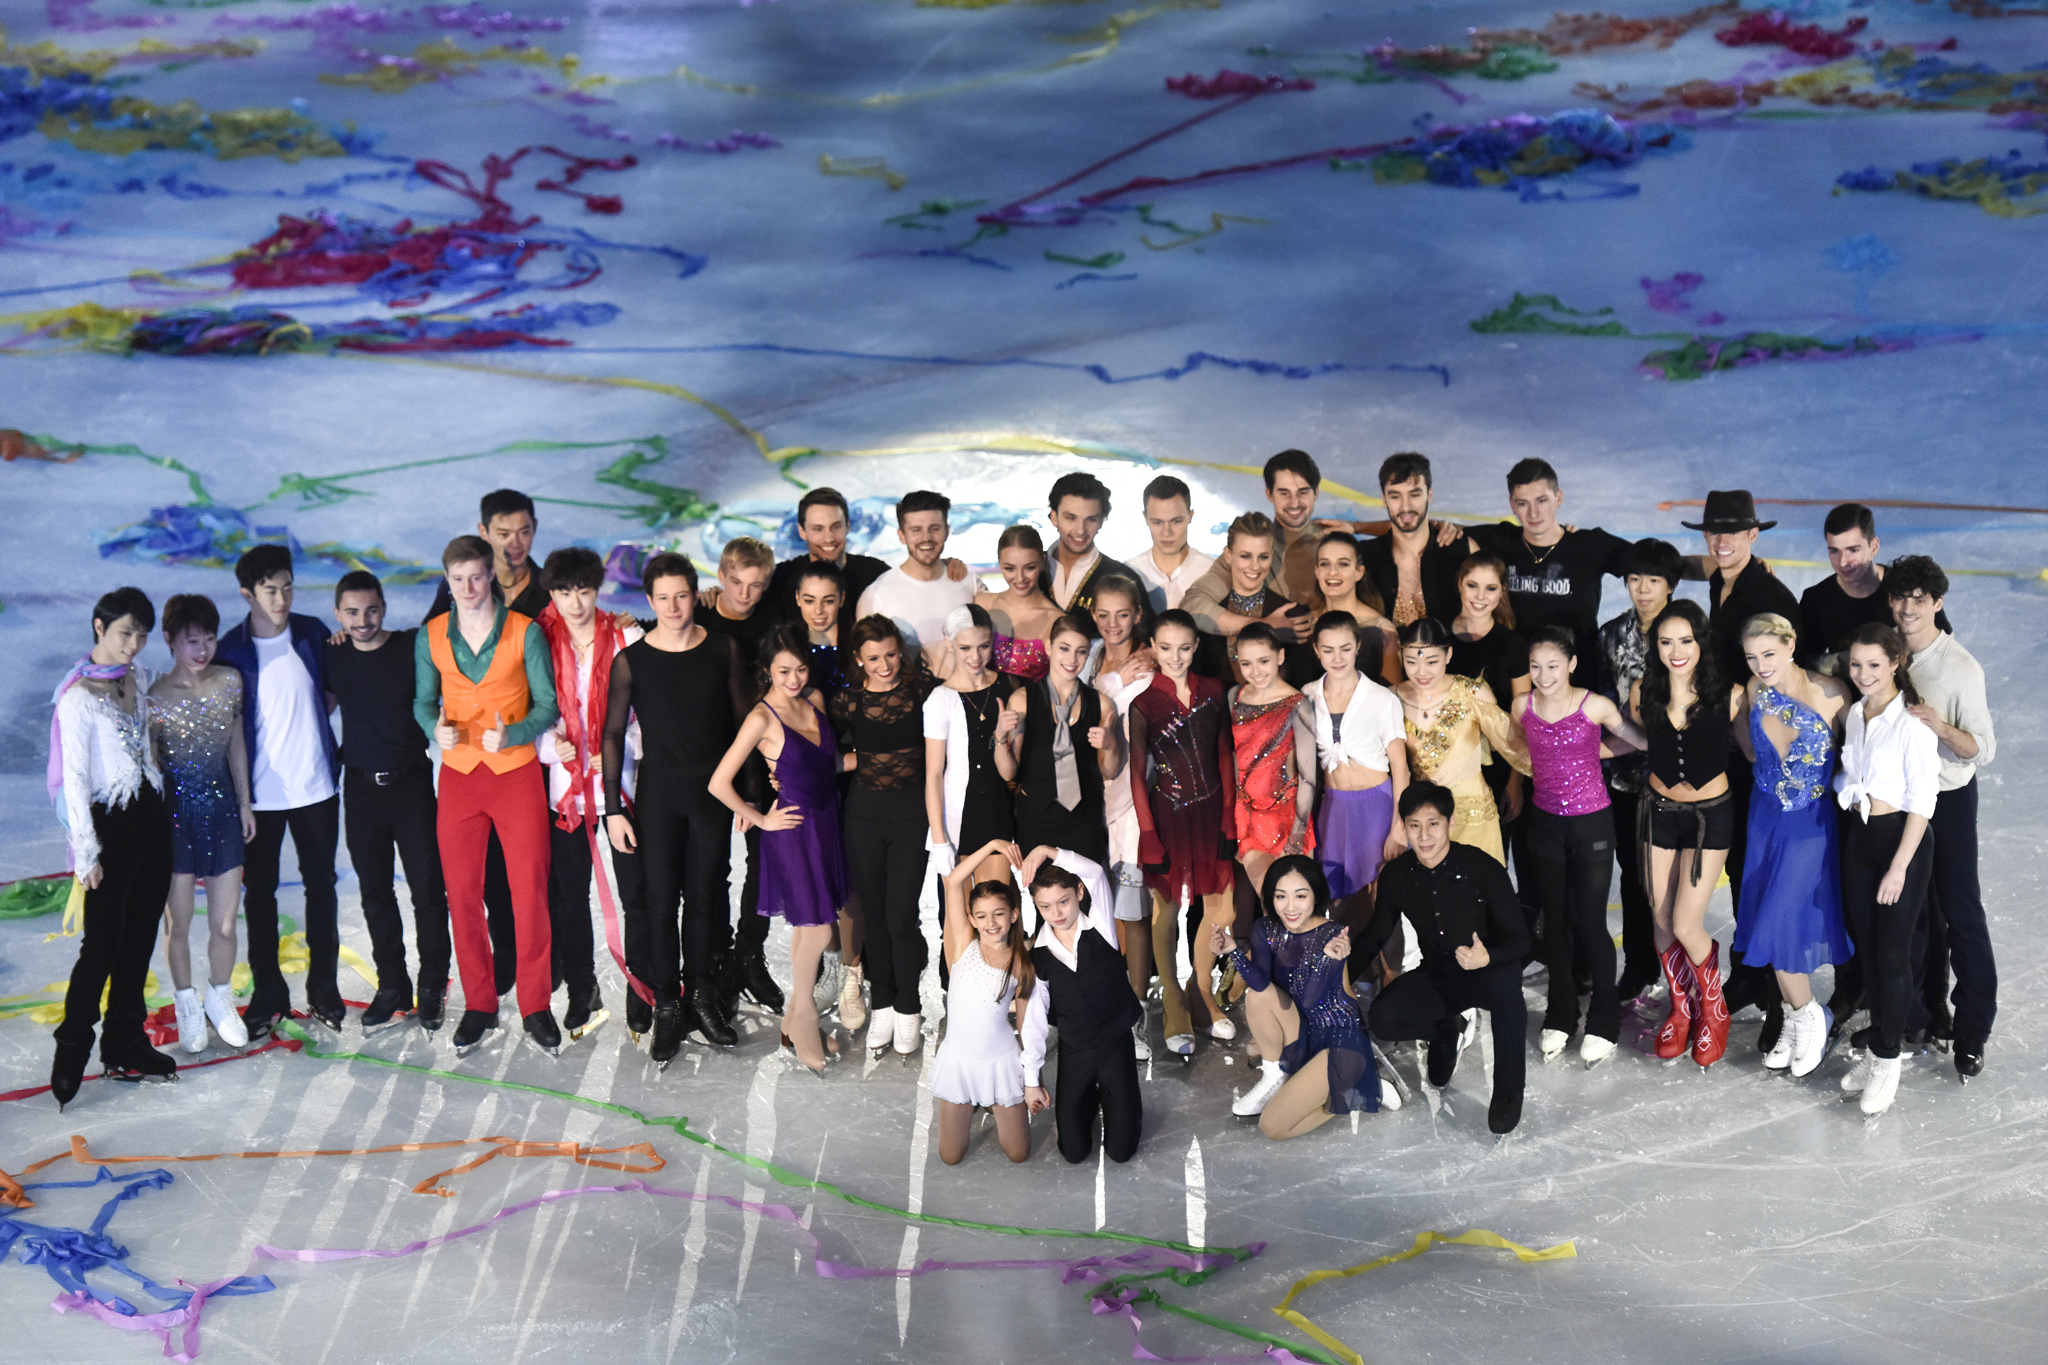 ISU Grand Prix of Figure Skating Final (Senior & Junior). Dec 05 - Dec 08, 2019.  Torino /ITA  - Страница 33 ELWa40lXsAAux8a?format=jpg&name=4096x4096